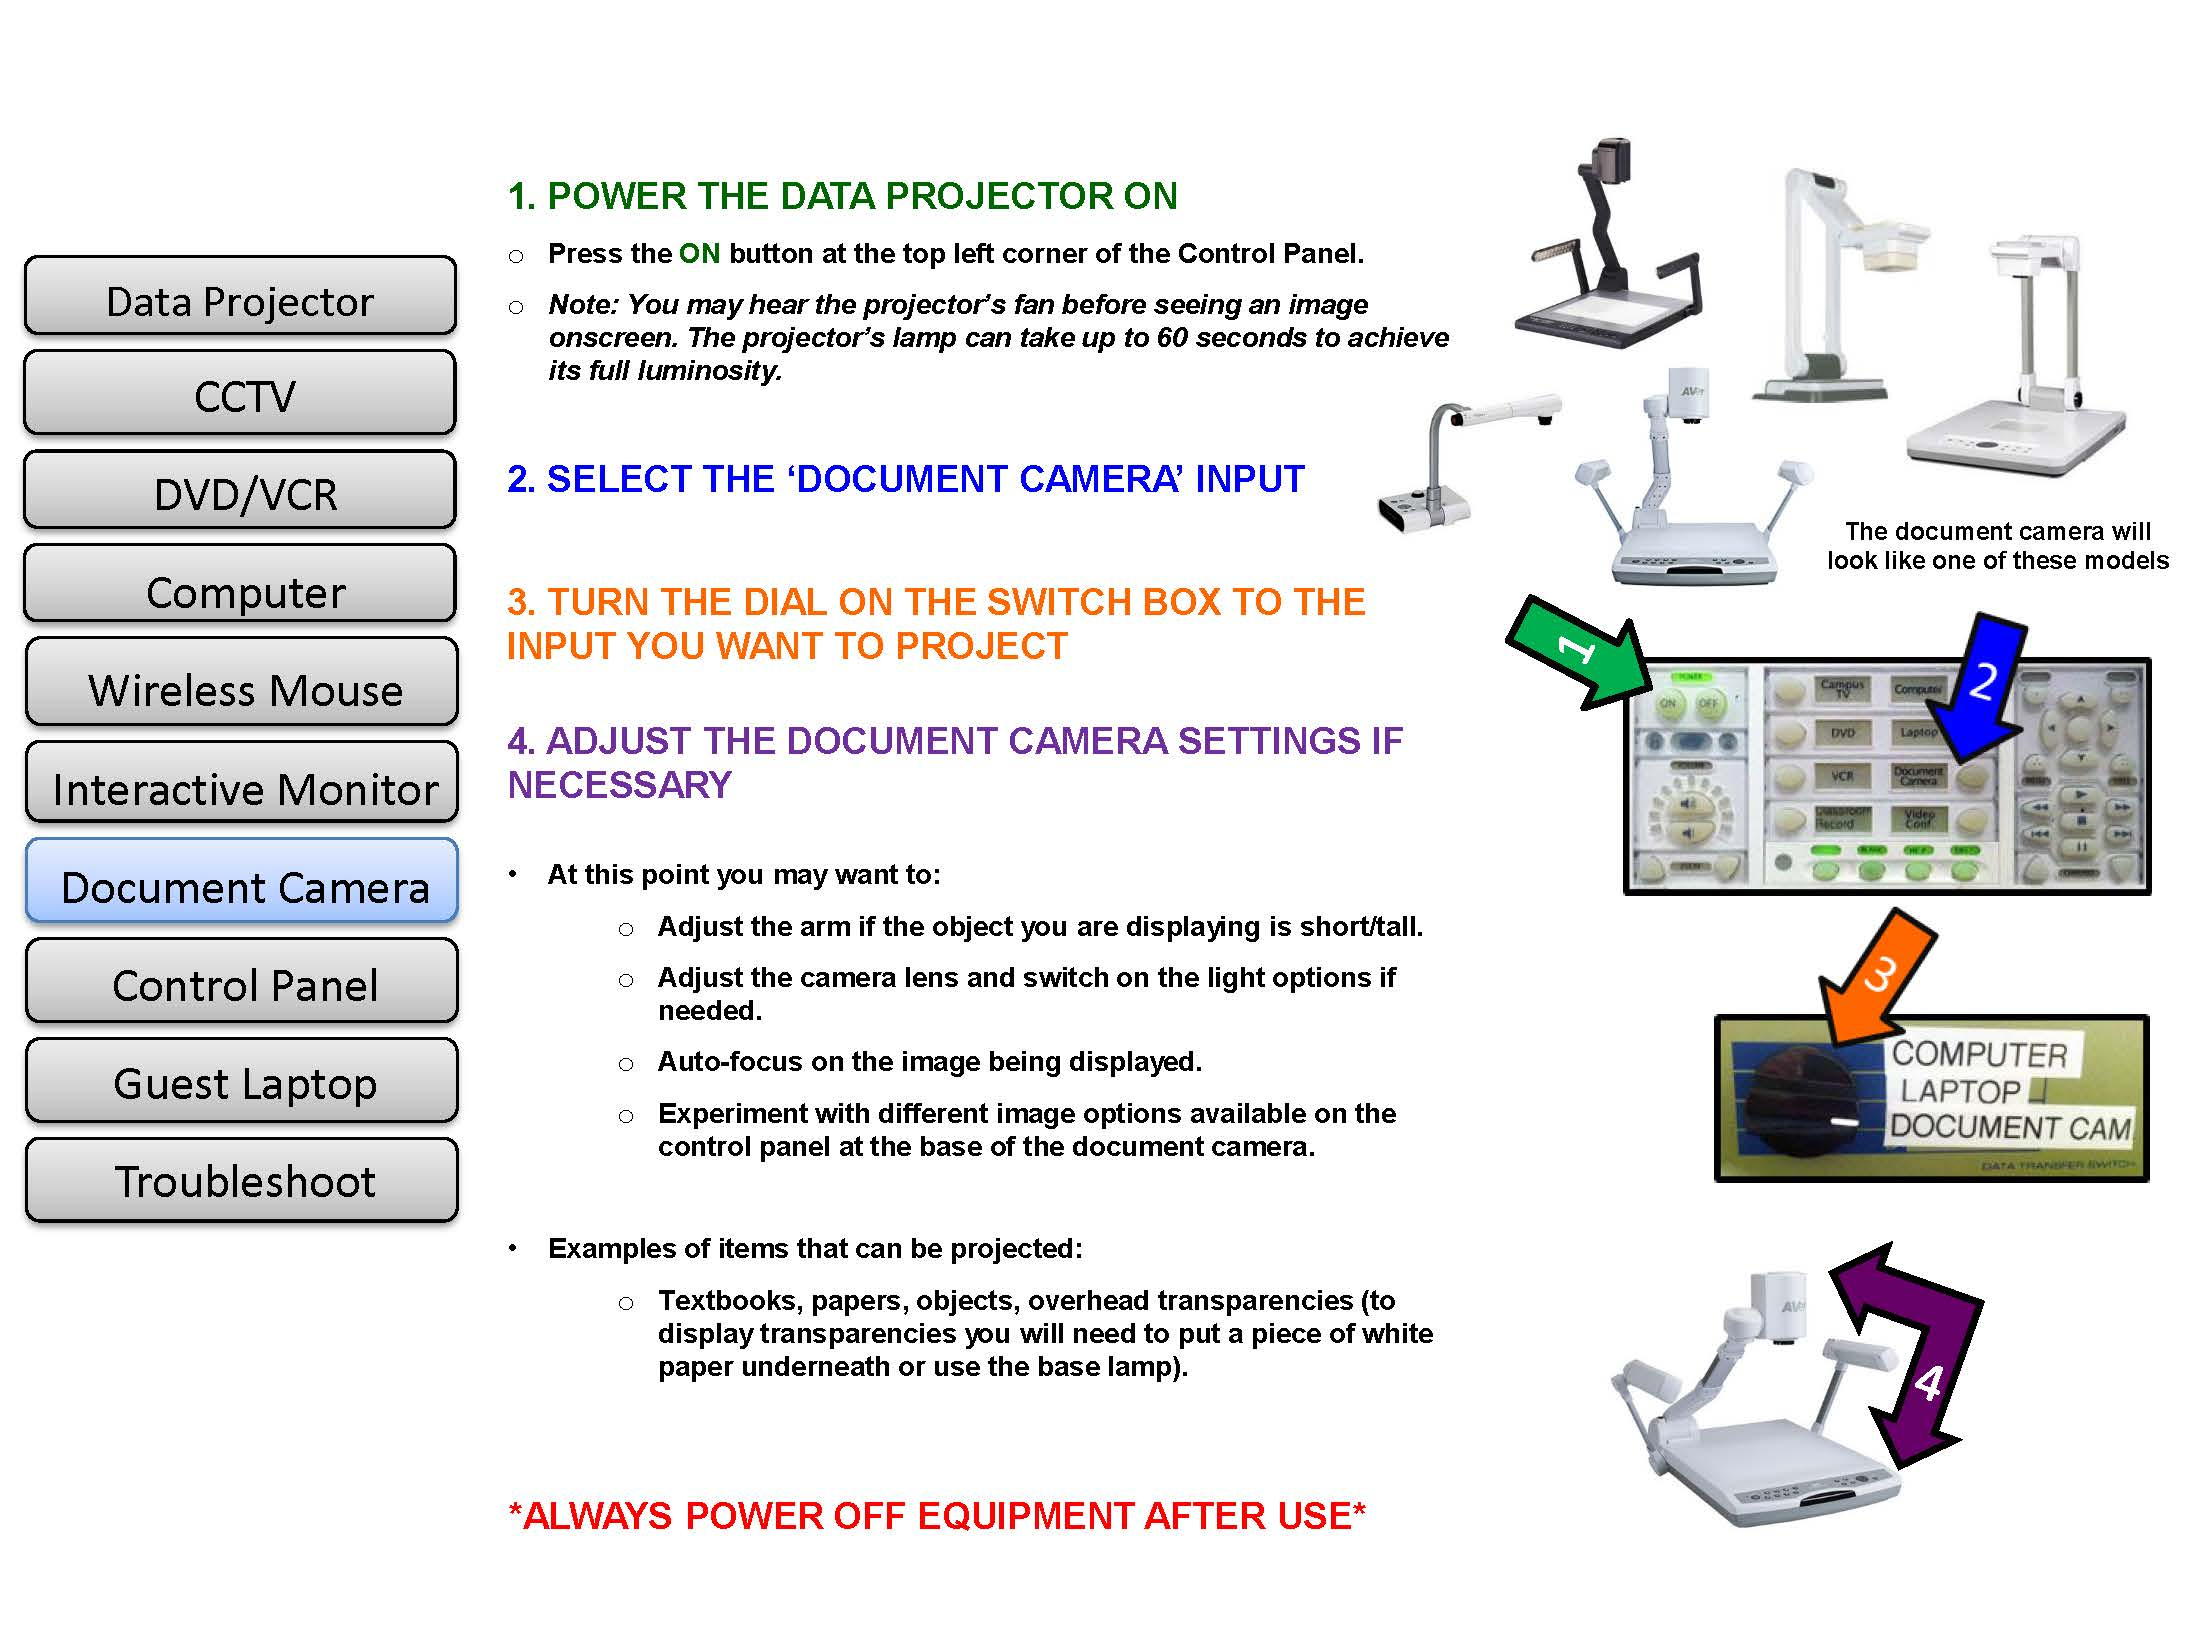 How to use the document camera in the Classroom